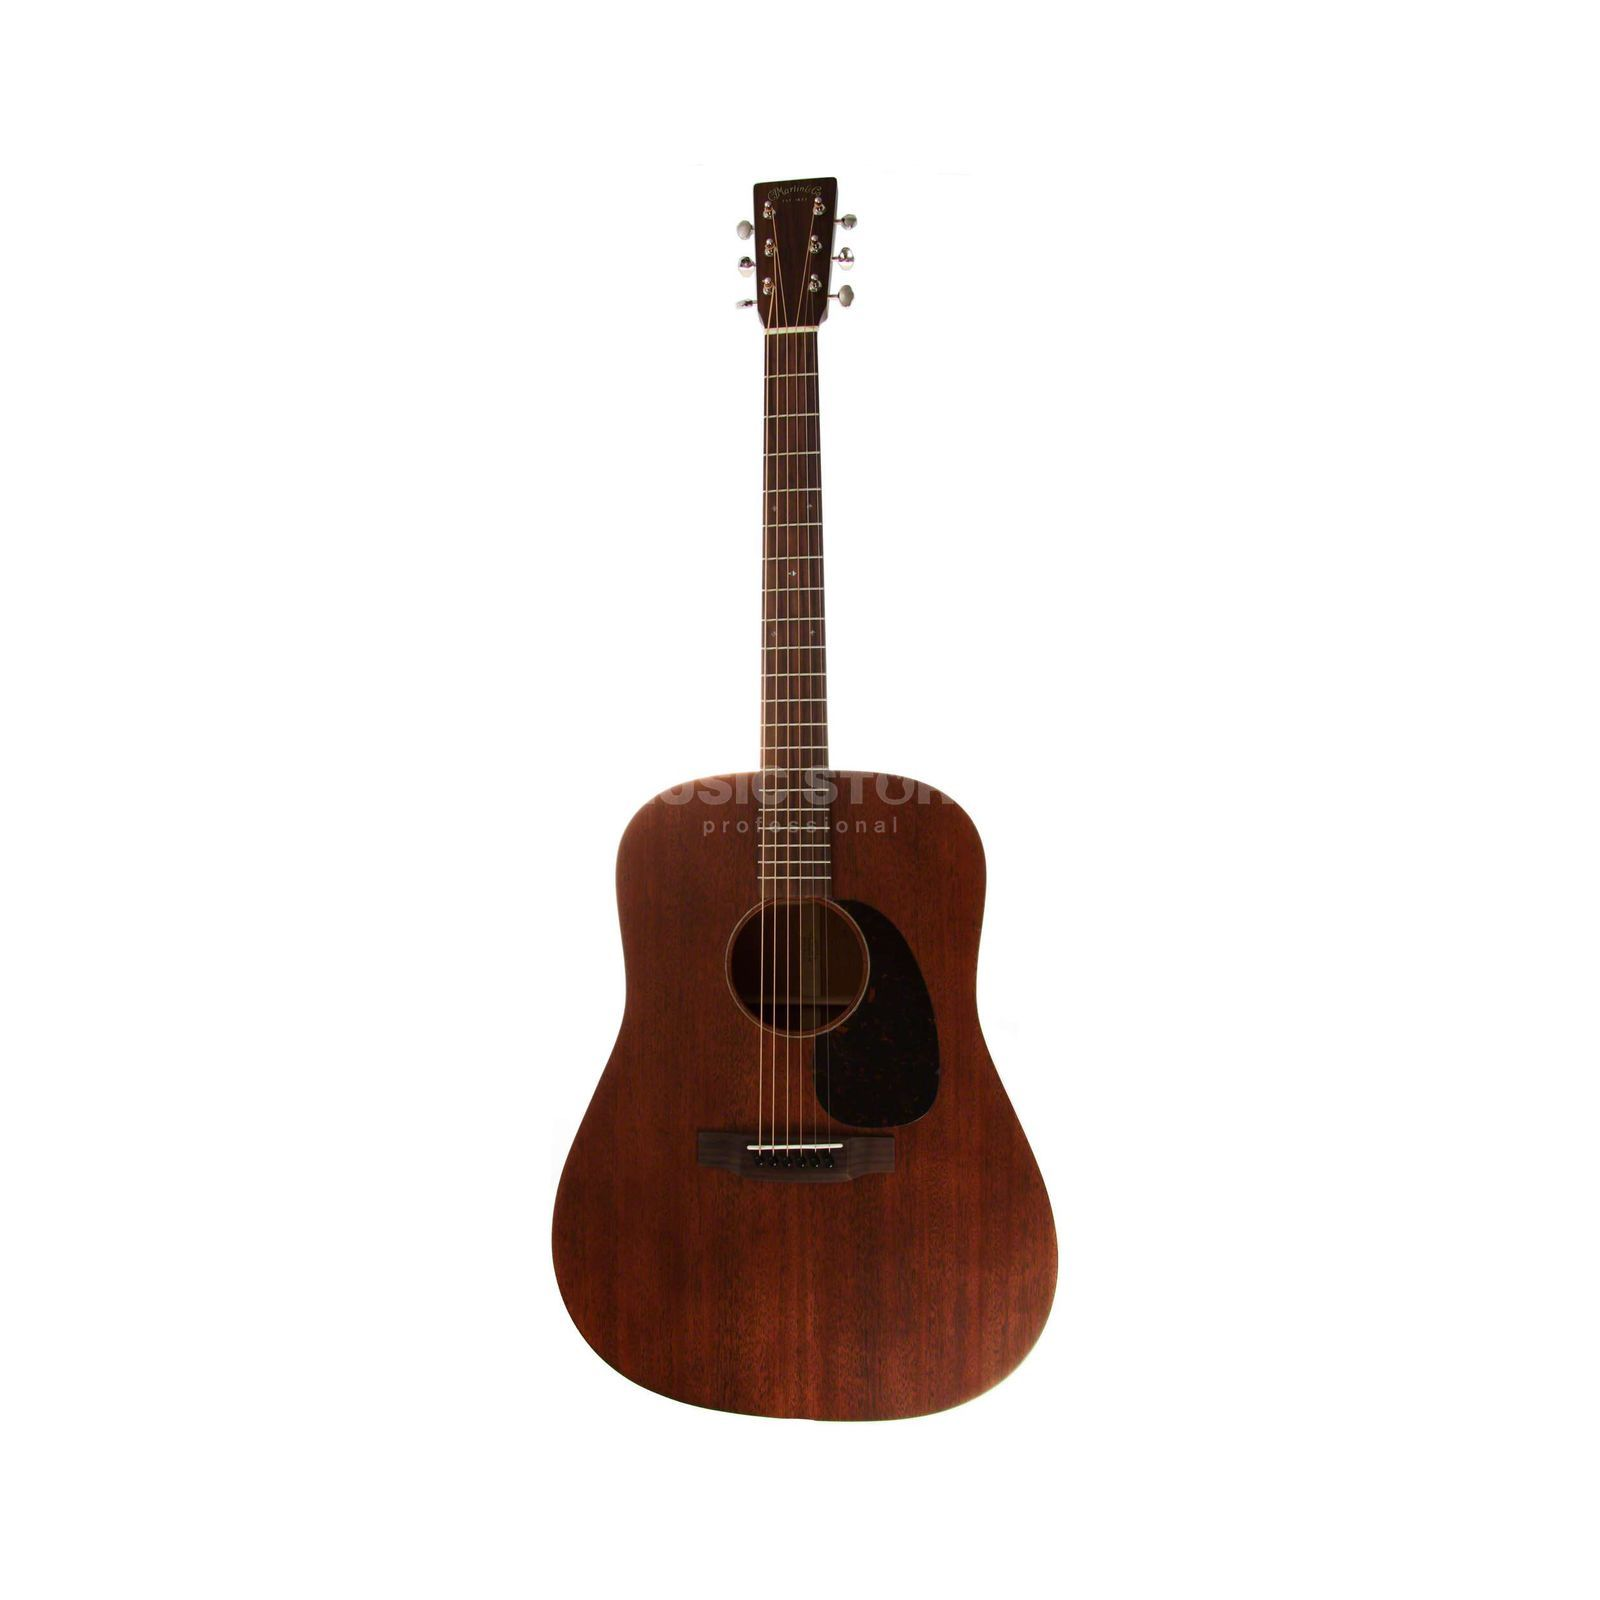 Martin Guitars D-15ME incl. Case Product Image